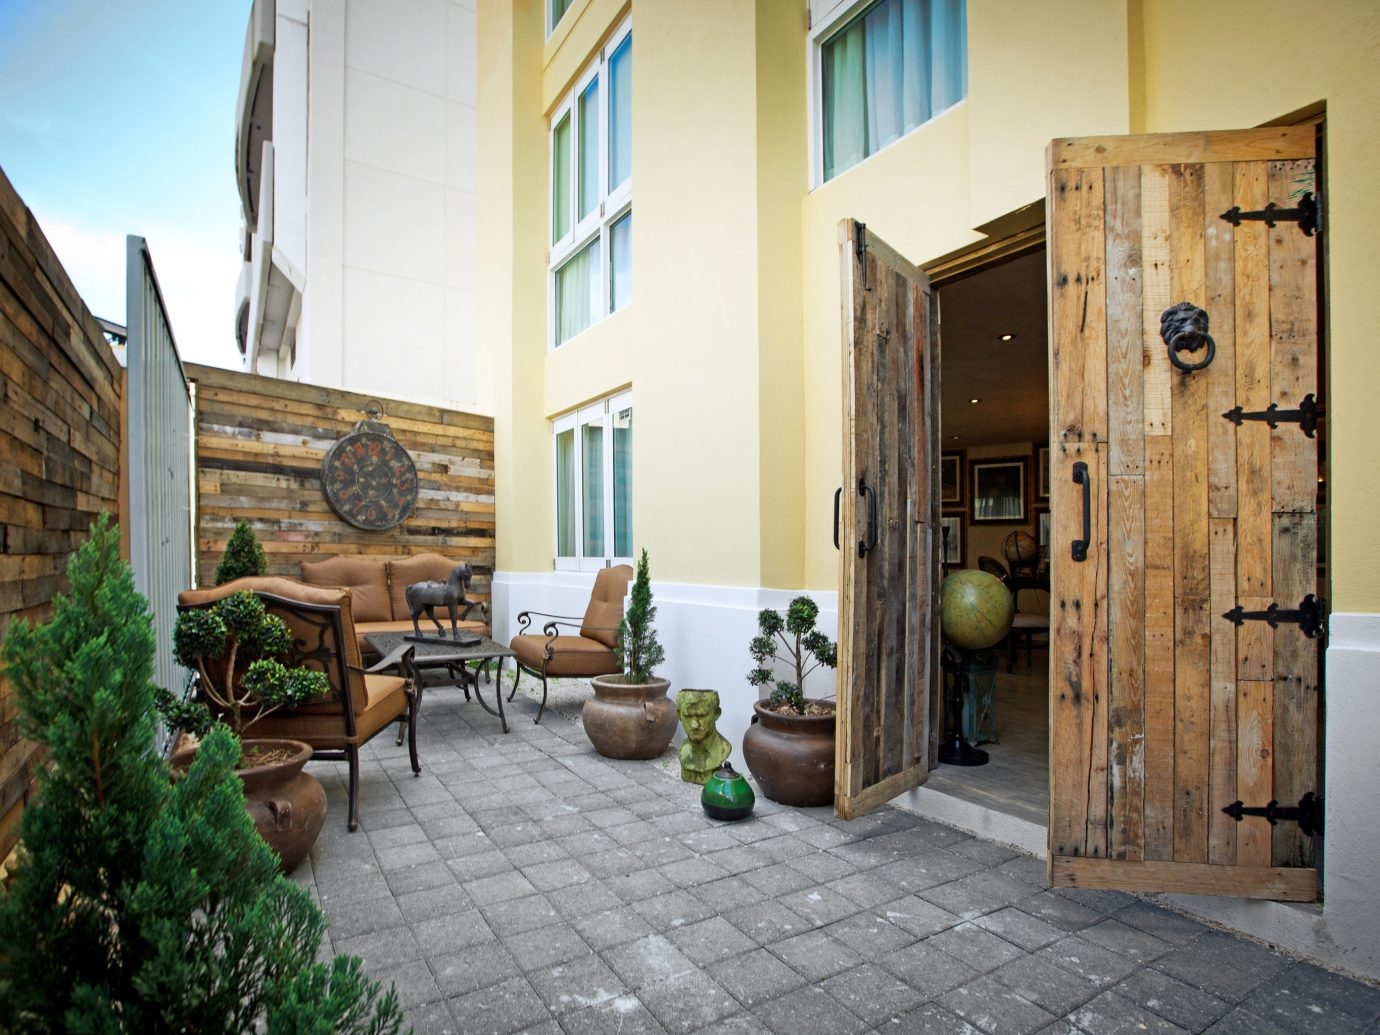 Exterior Hotels Lounge Patio Rustic property room house estate home Courtyard cottage real estate facade interior design furniture stone